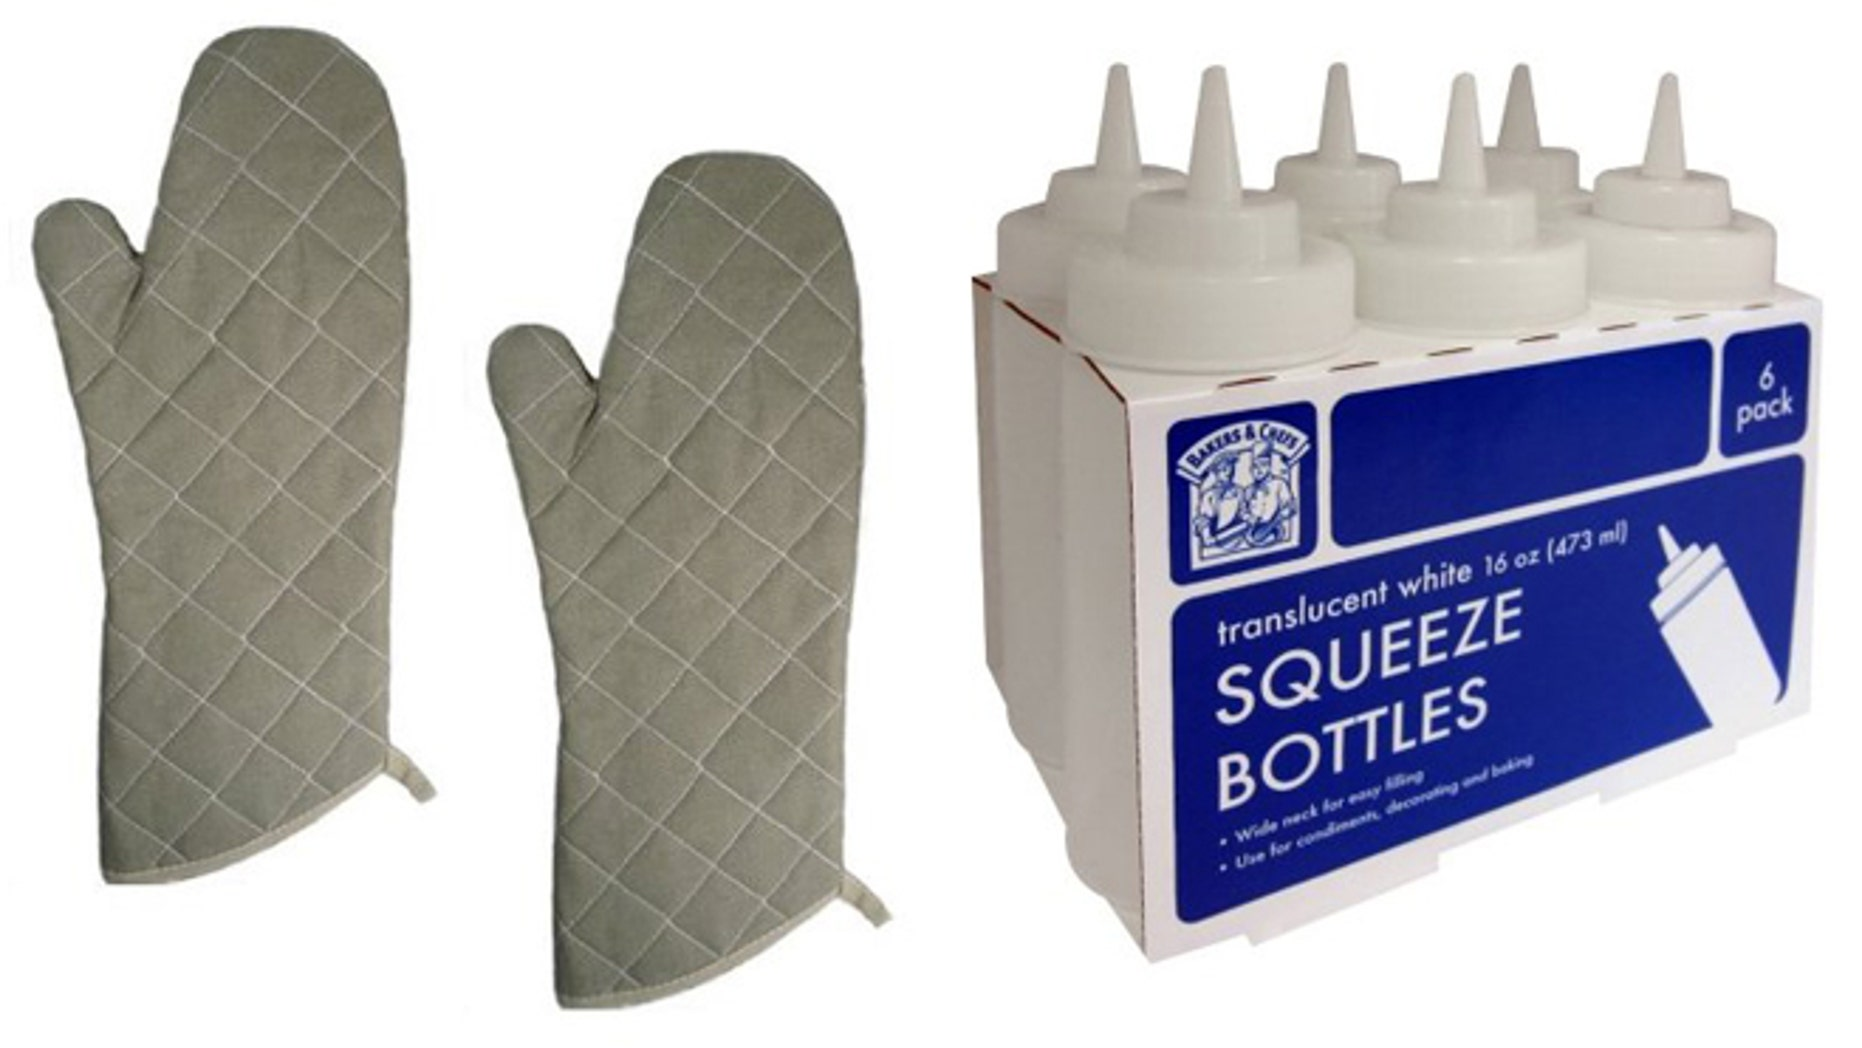 Heat resistant oven mitts and squeeze bottles aren't just for restaurant kitchens.